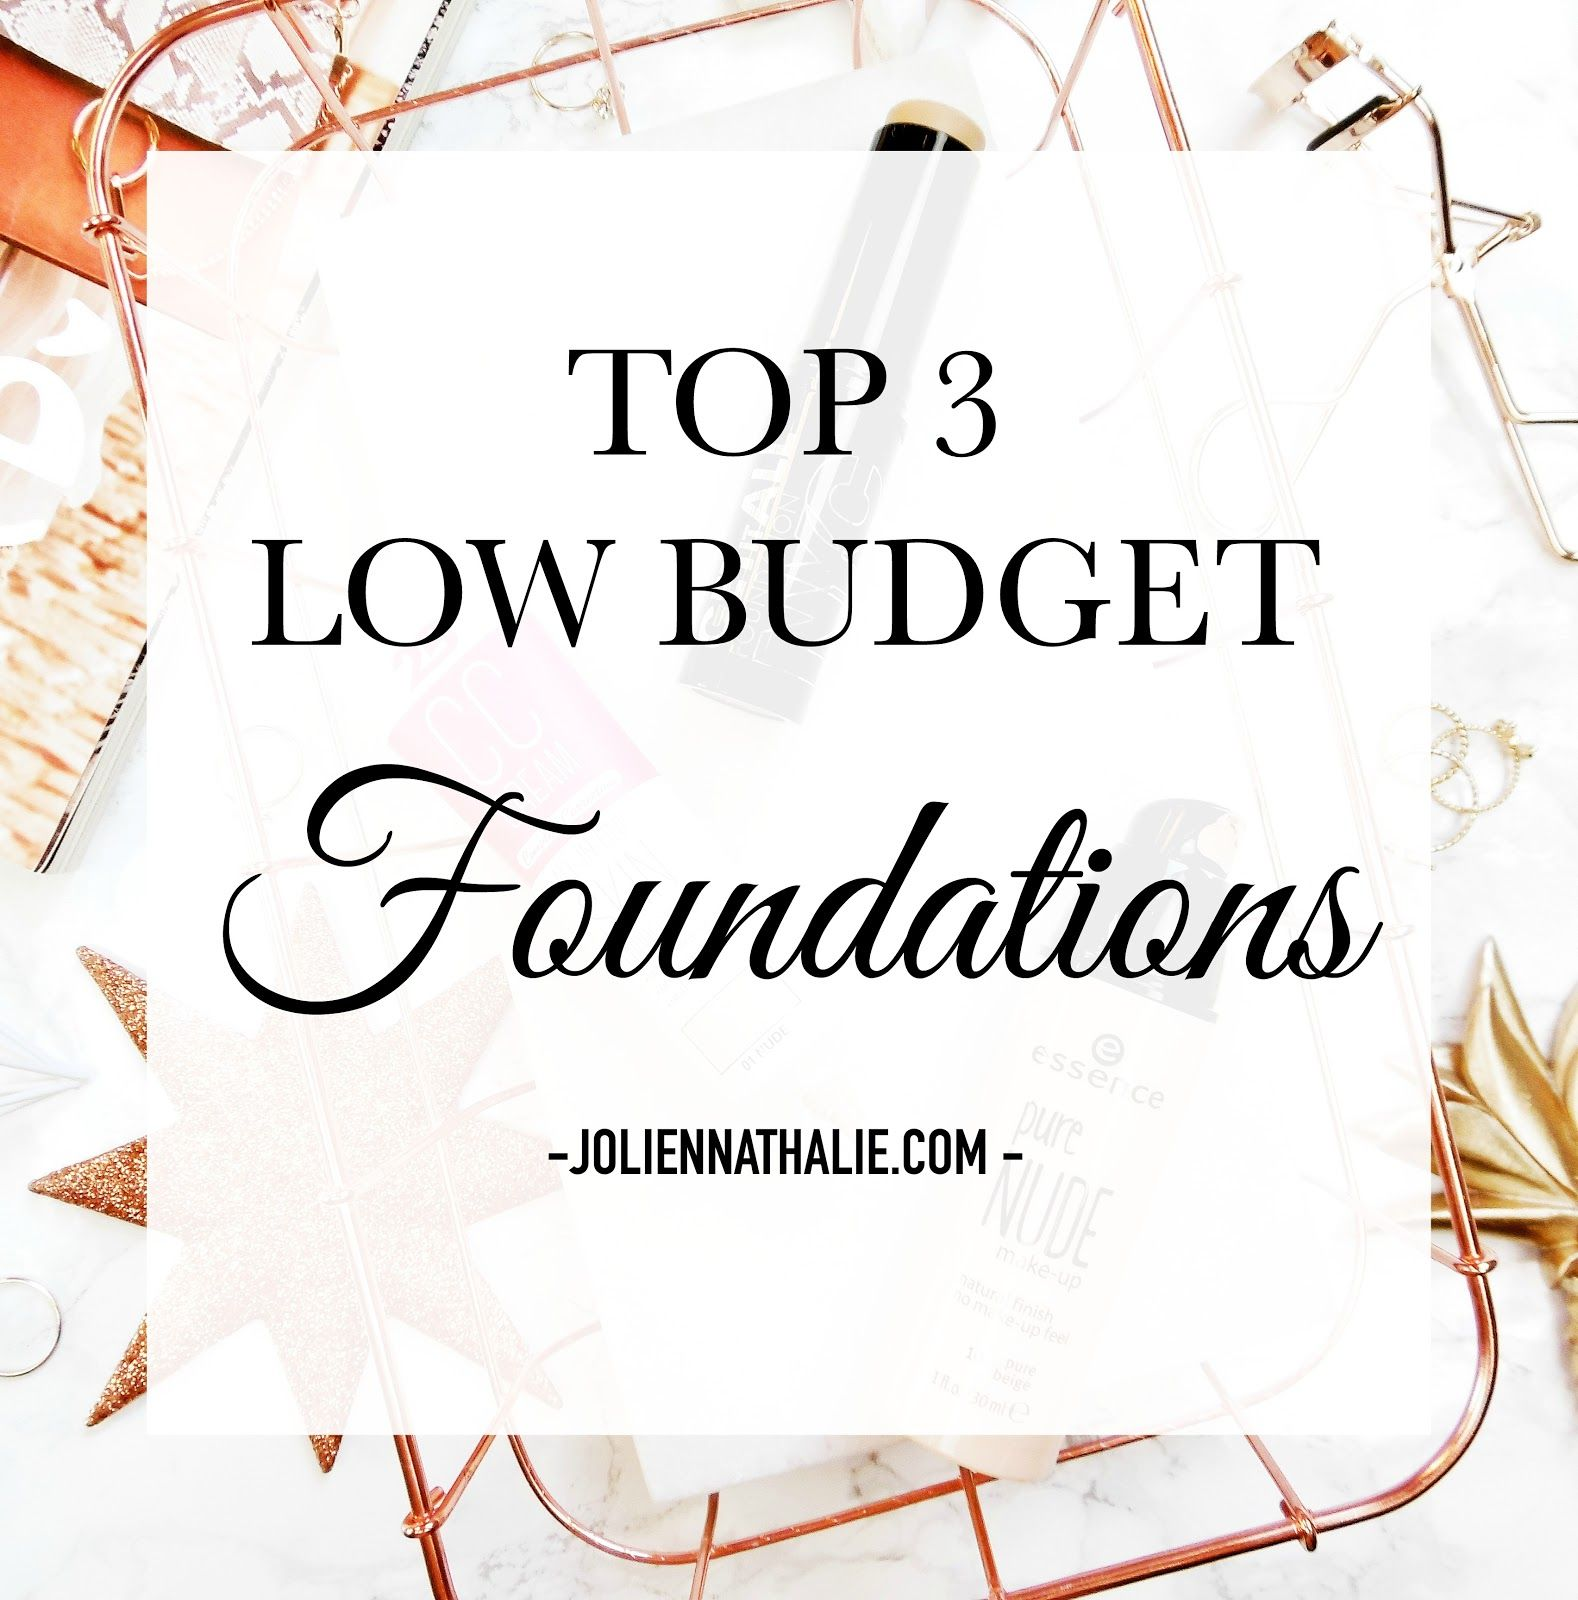 TOP 3 Budget Foundations You Should Try - http://www.joliennathalie.com/2016/12/top-3-budget-proof-foundations-you-should-try.html